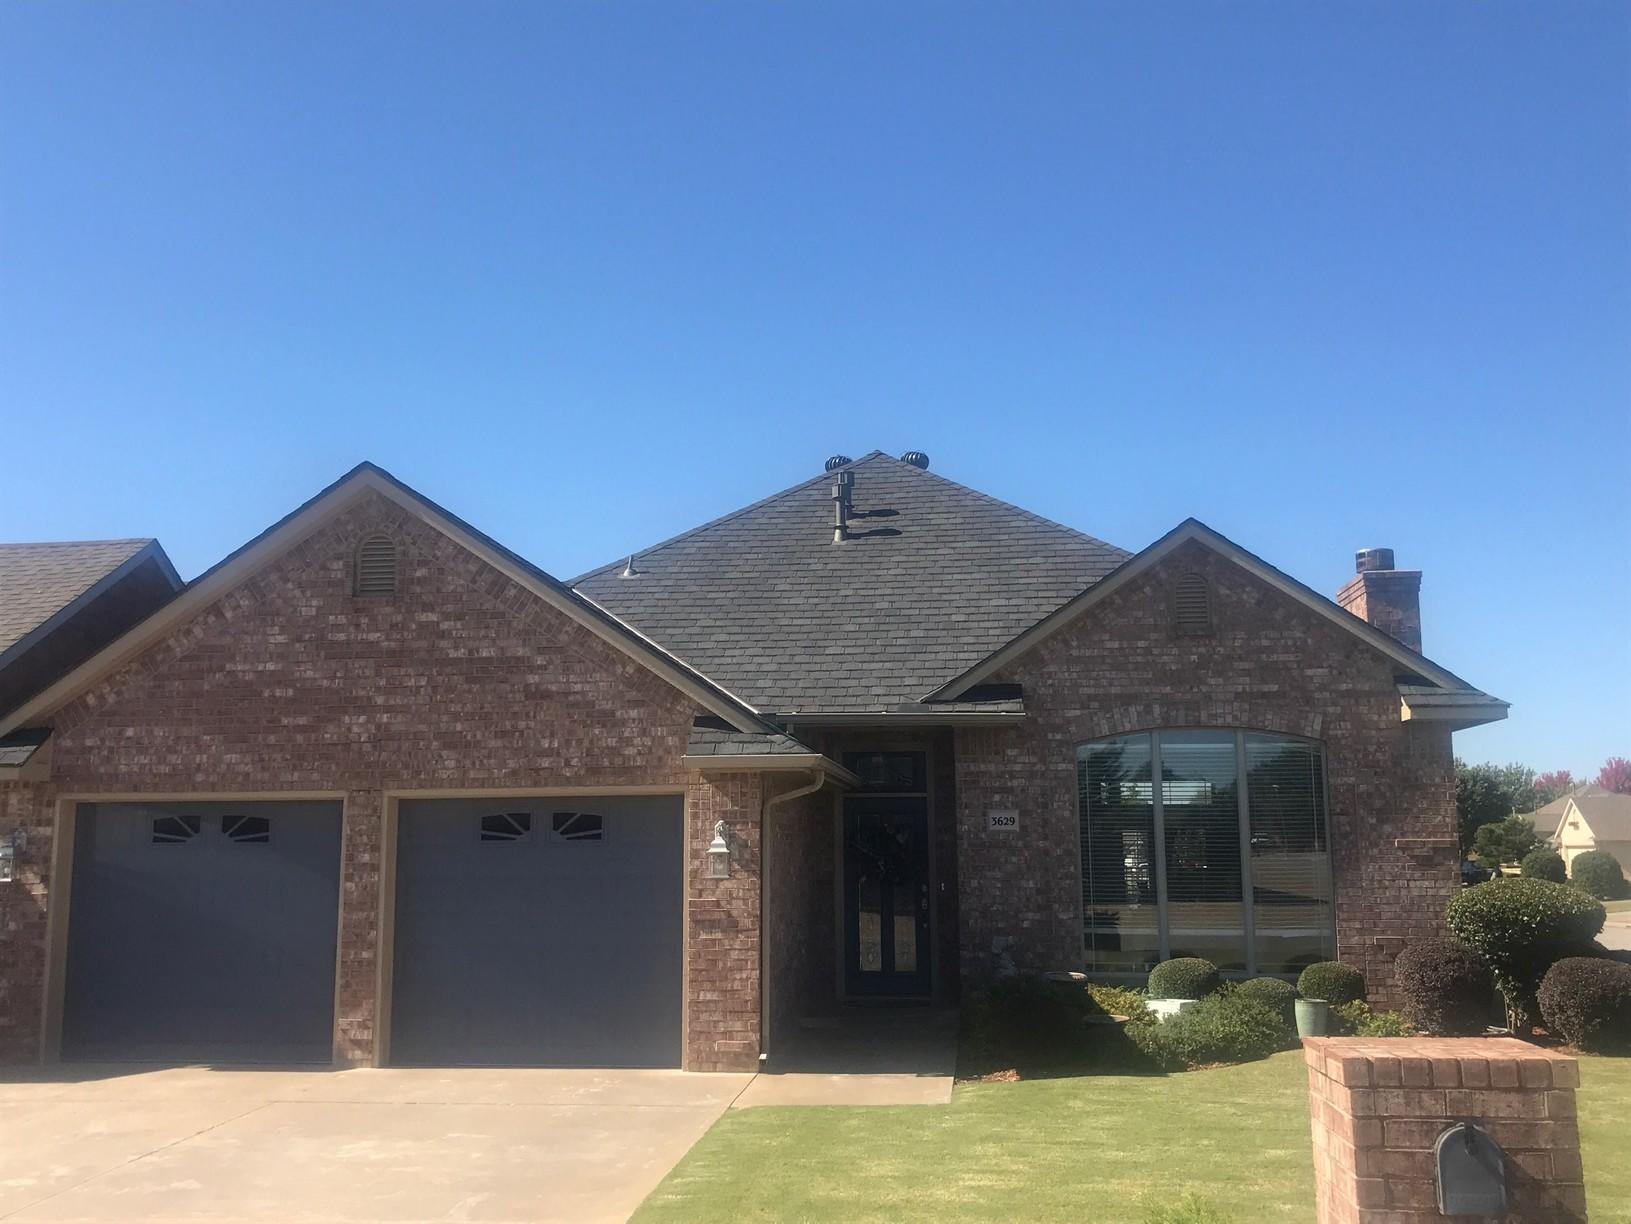 New Roof Replacement in Enid, OK - After Photo